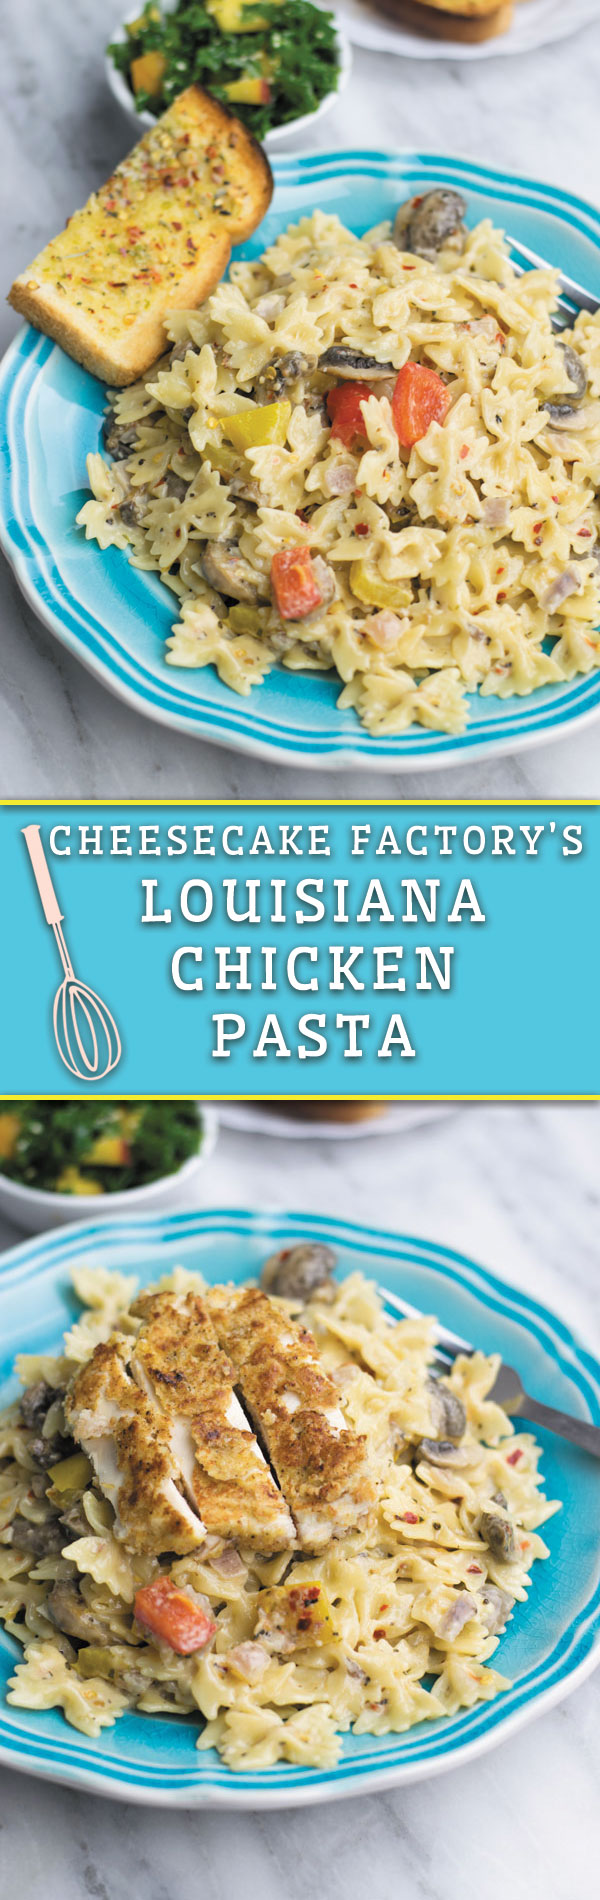 cheesecake-factory's-louisiana-chicken-pasta-pinterest